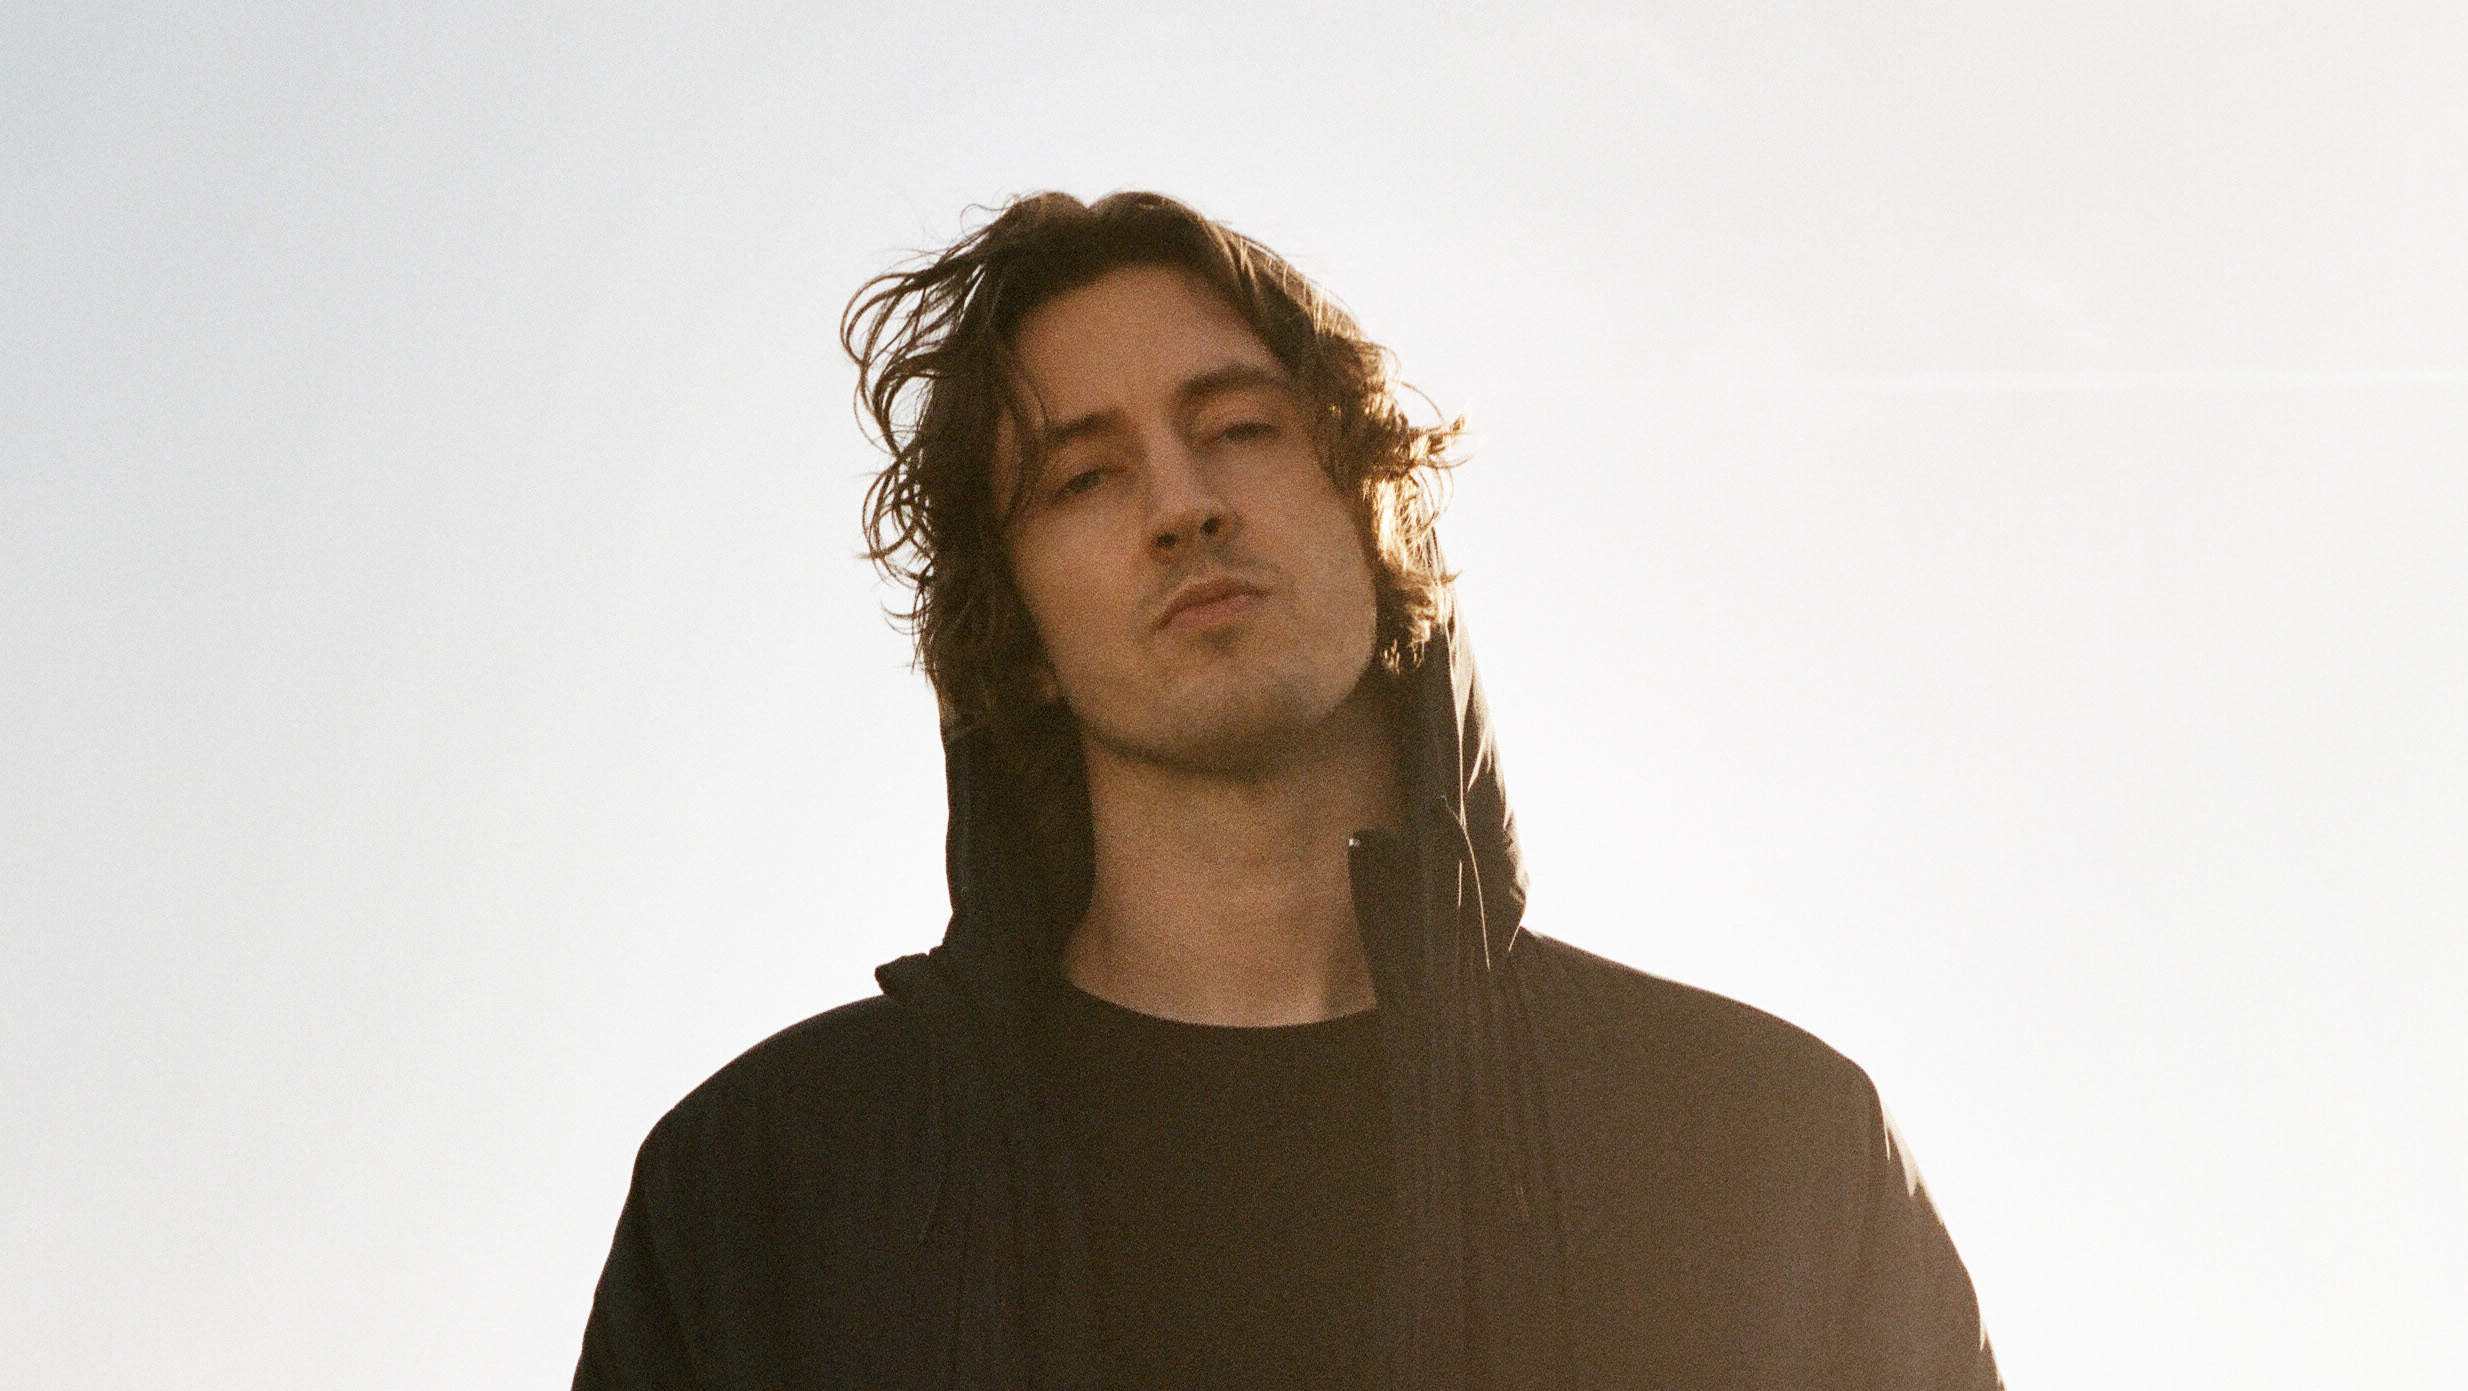 Dean Lewis Rilis Single Calon Hits Baru, '7 Minutes'